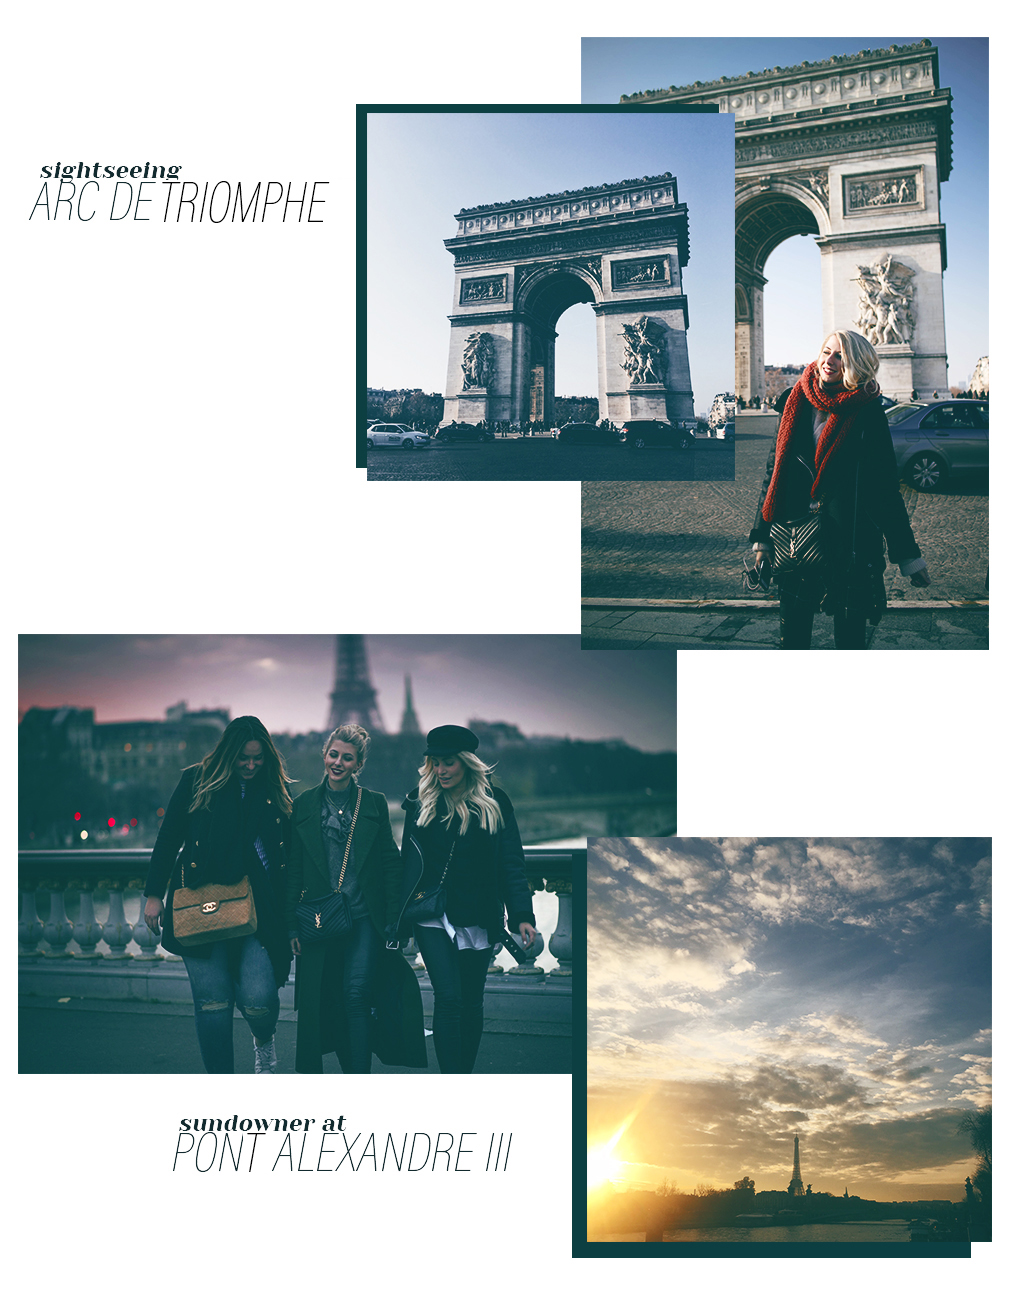 Sightseeing Paris Arc de triomphe Pont Alexandre III Sonnenuntergang Hot Spots Travel Blogger Paris Tipps